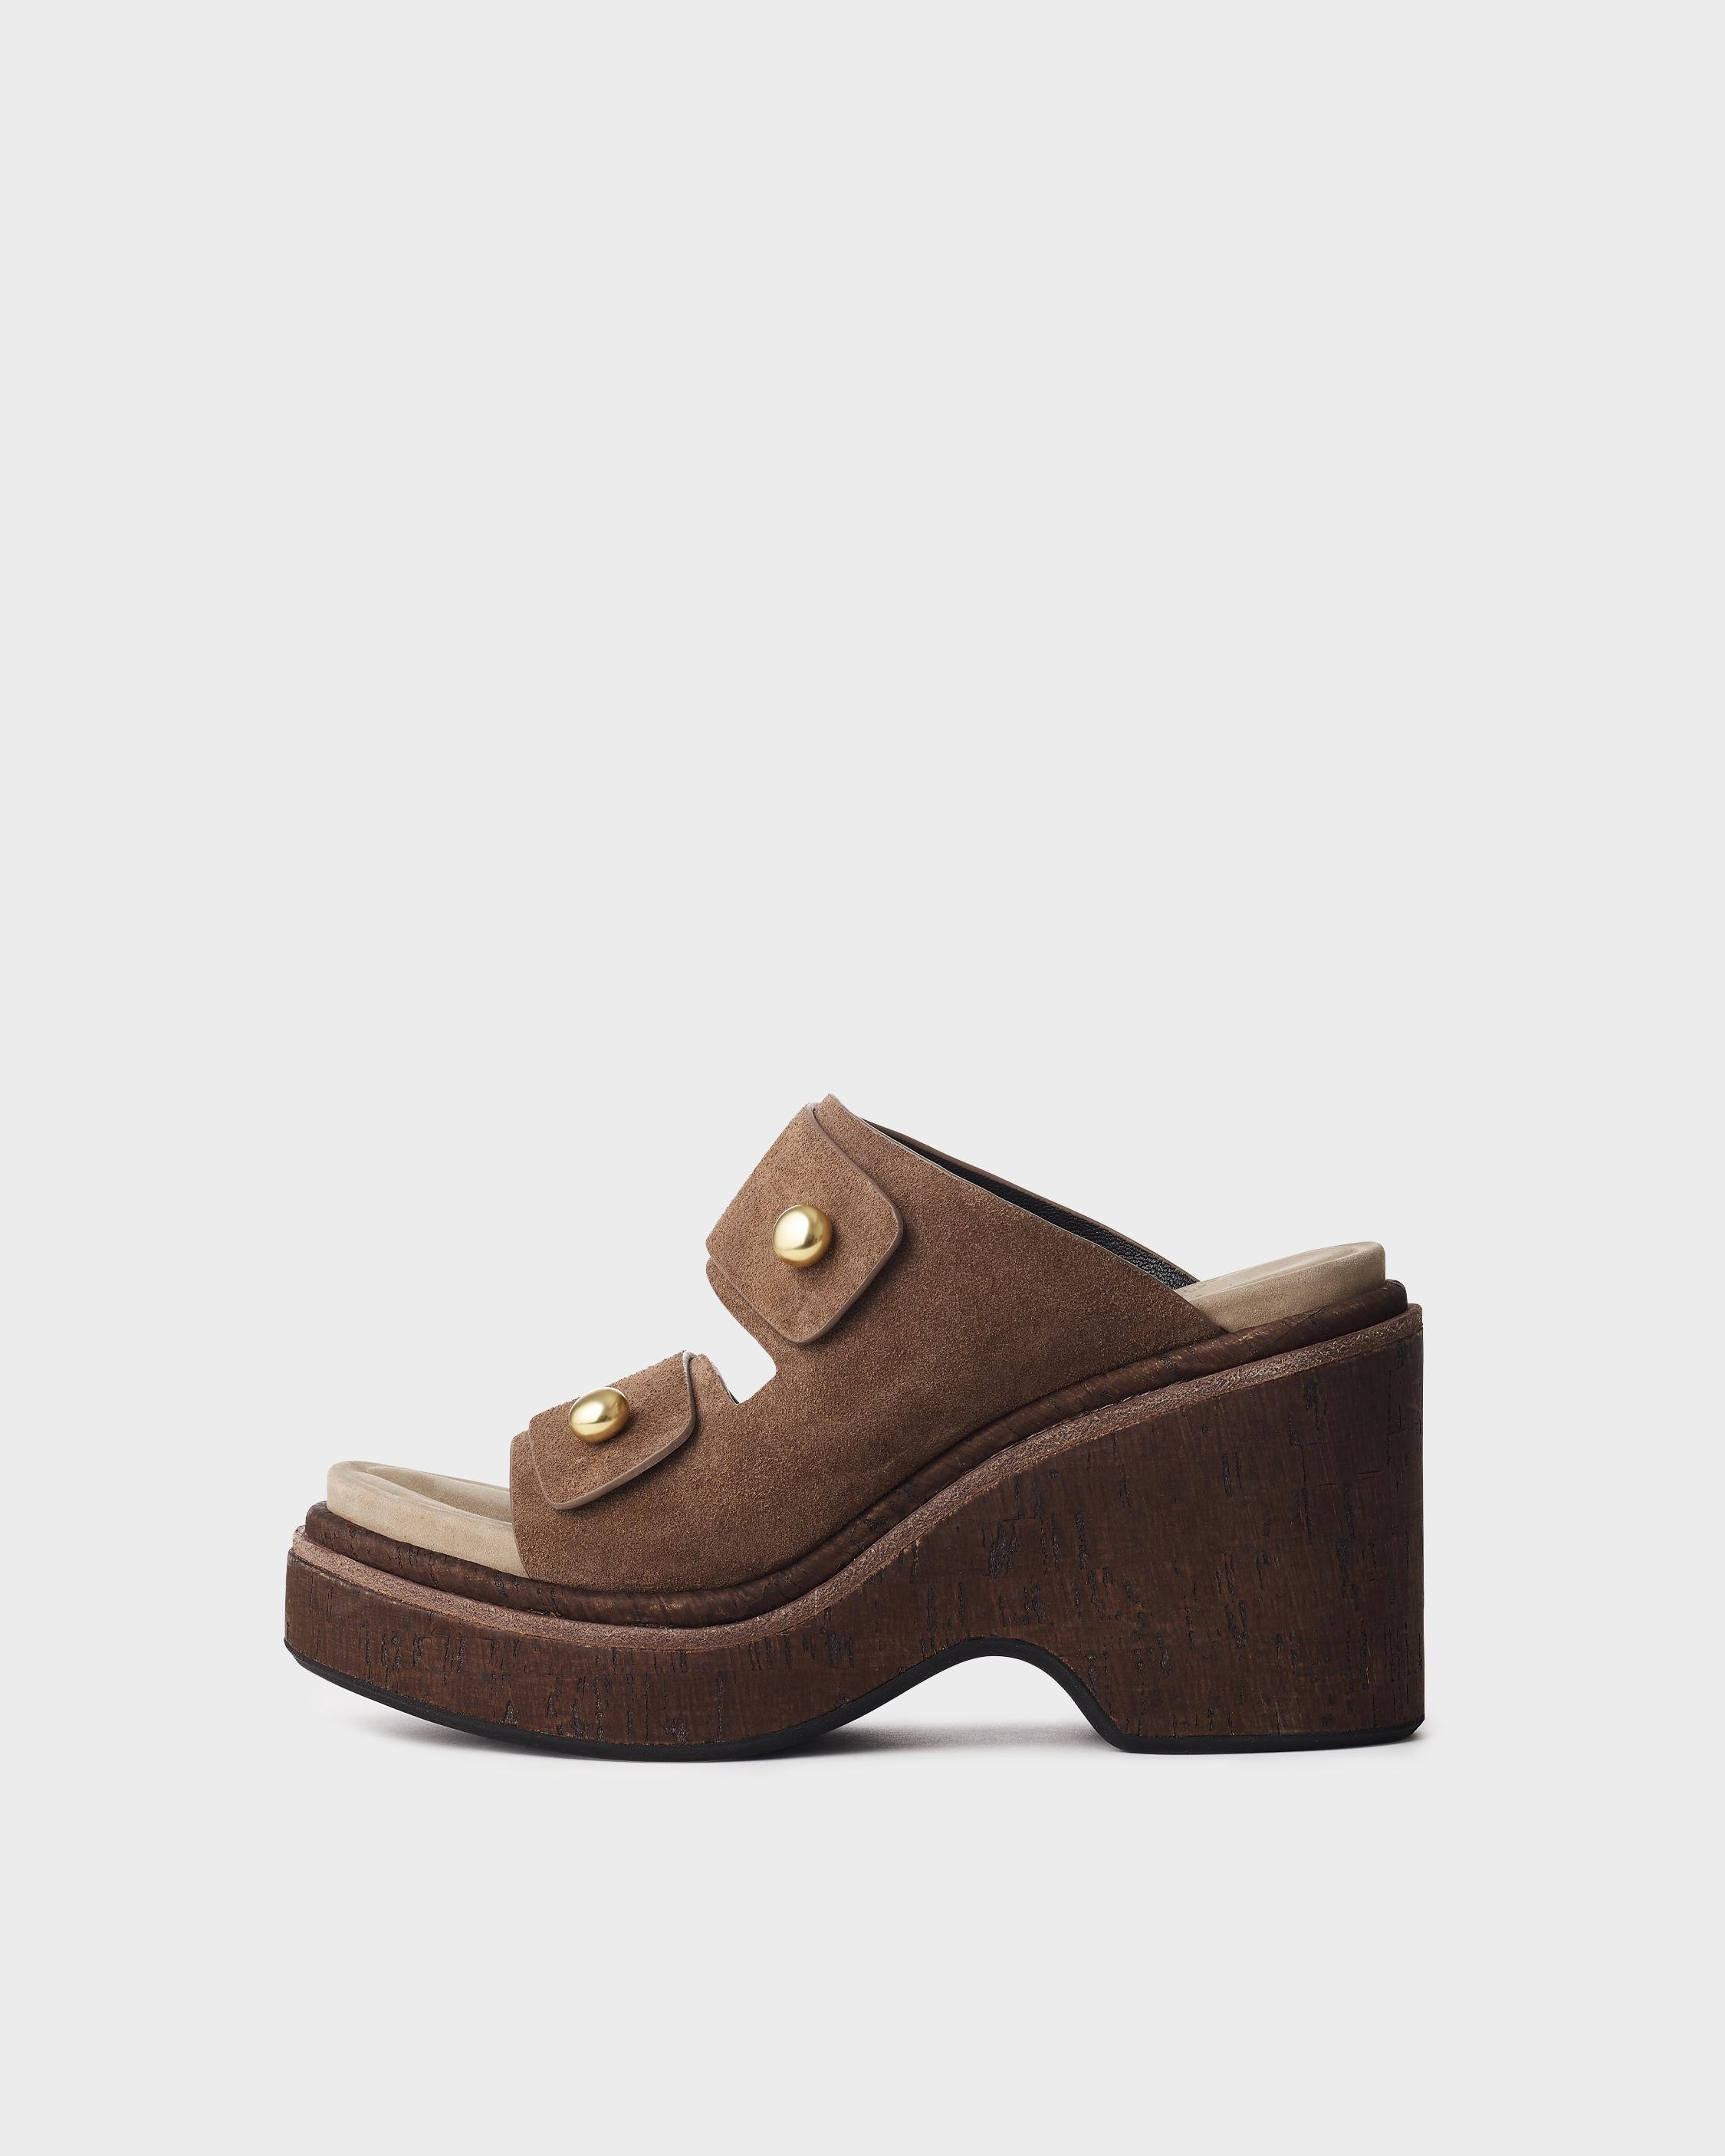 Sommer wedge - suede 0